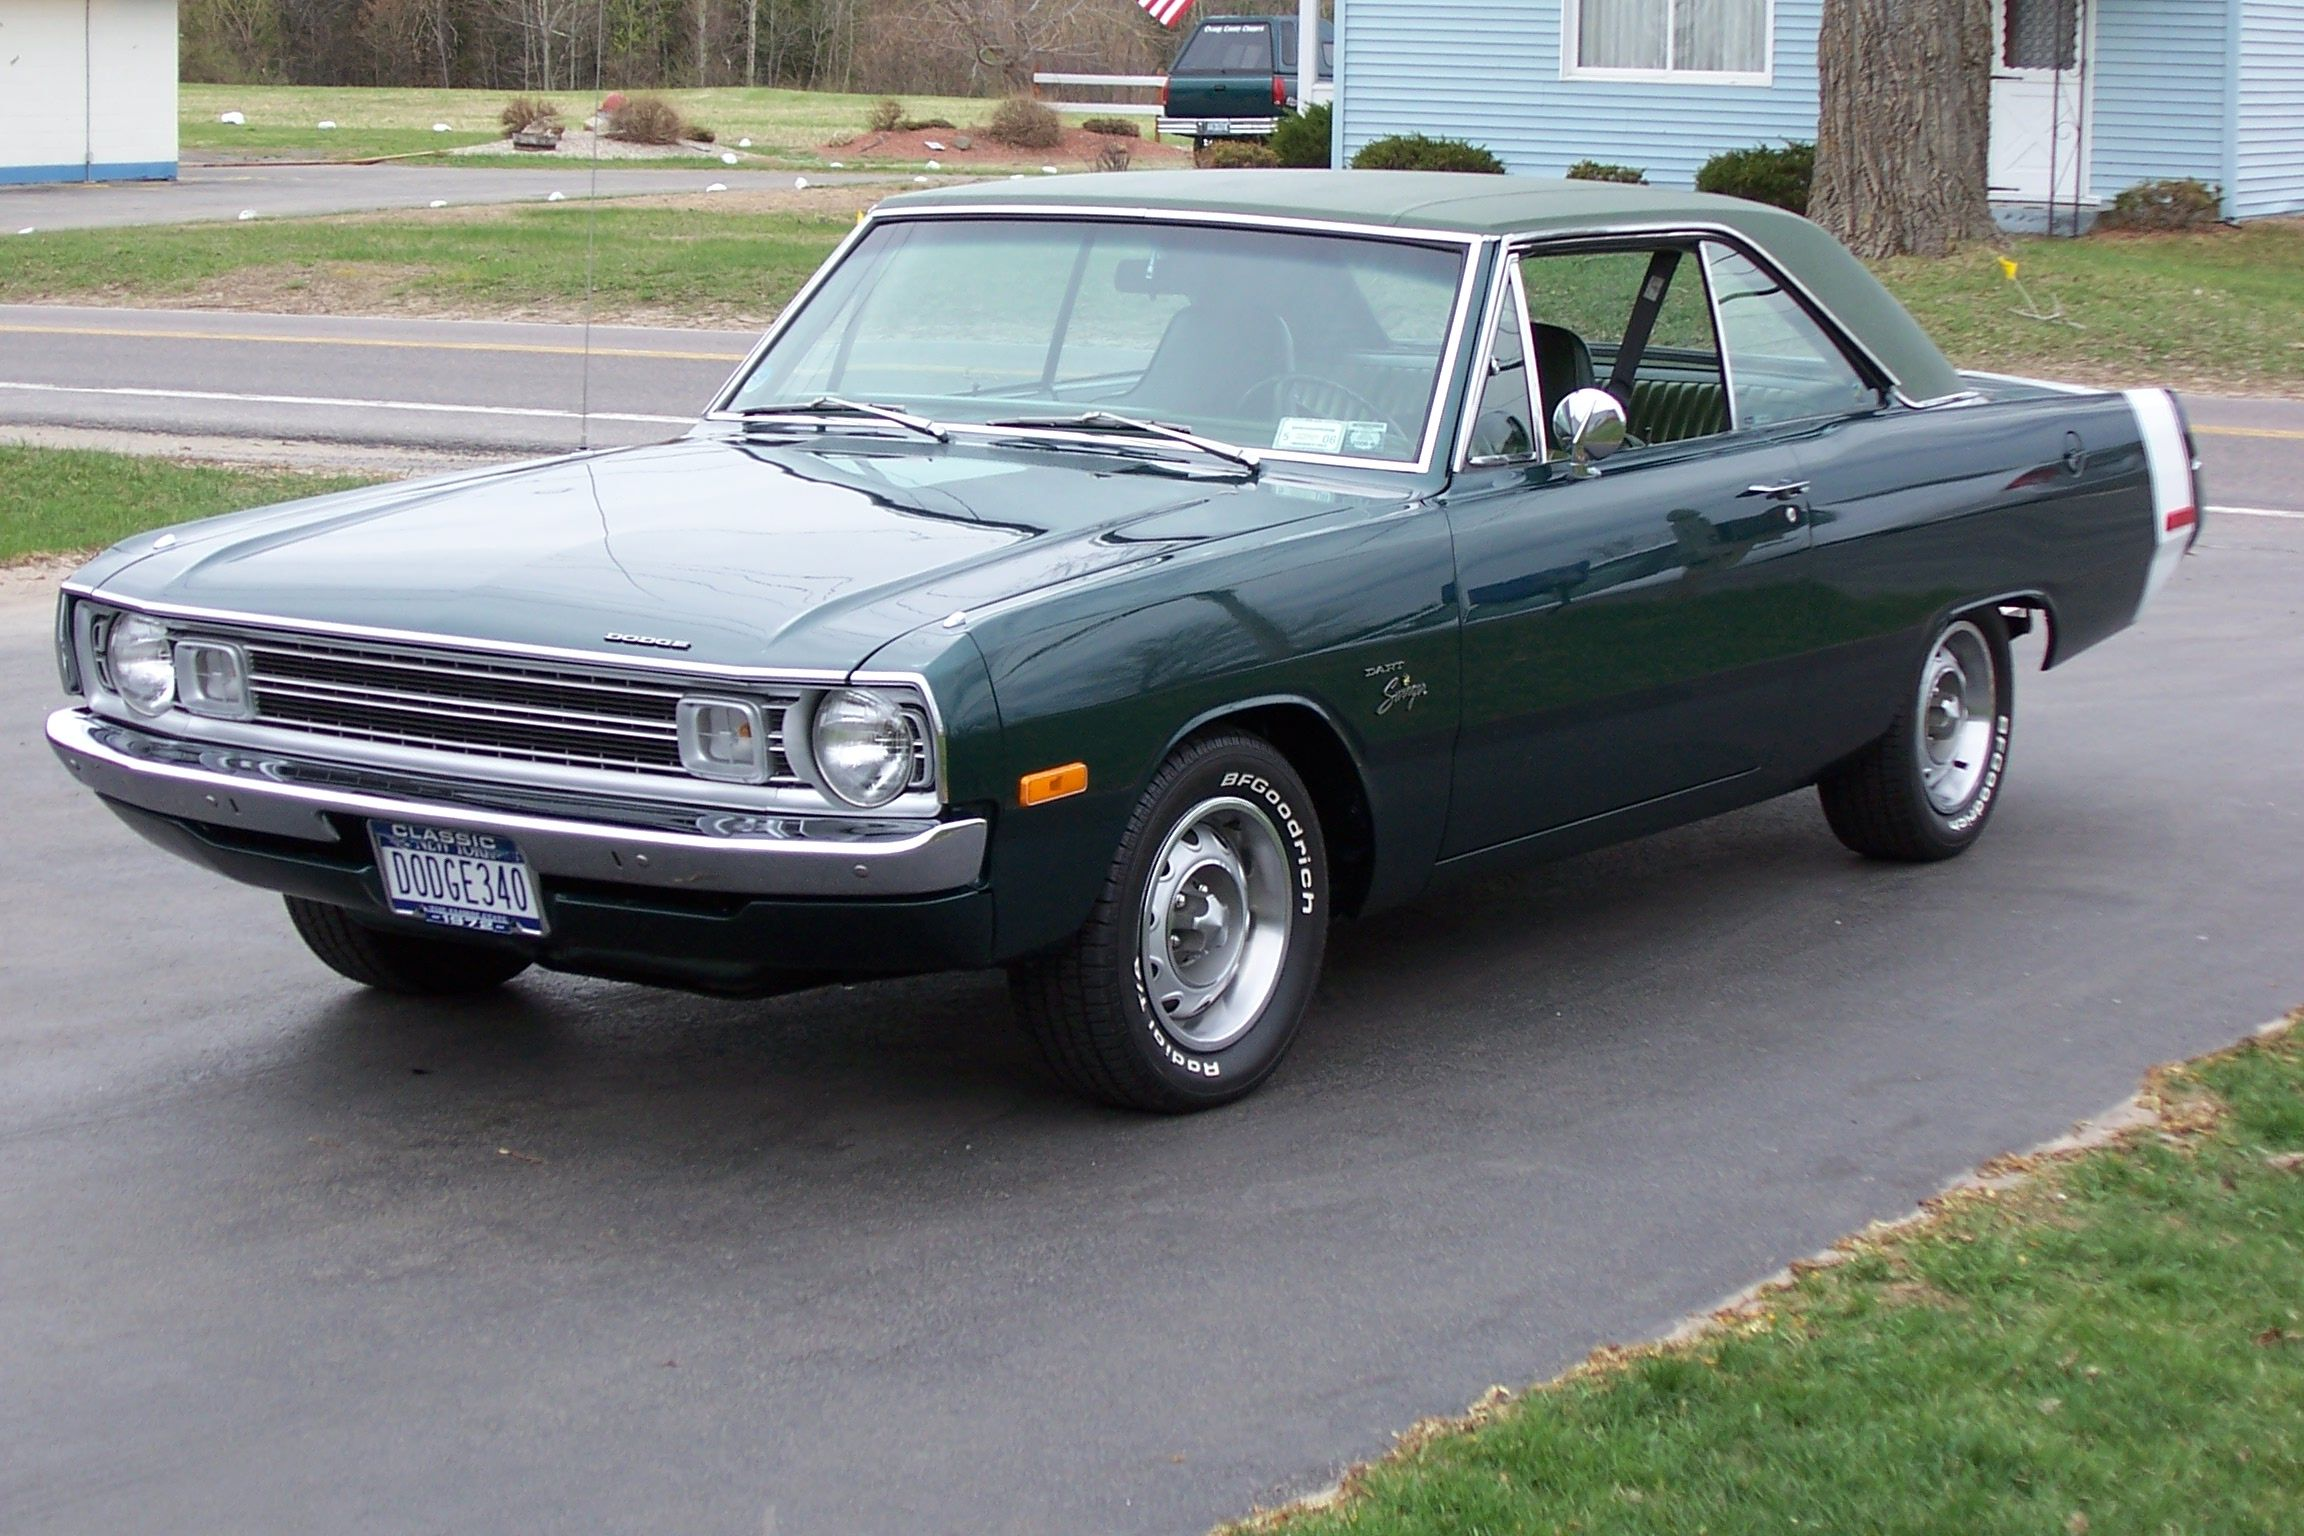 70 dodge dart swinger 340 dream garage pinterest darts 70 dodge dart swinger 340 dream garage pinterest darts classic cars online and dream garage sciox Images